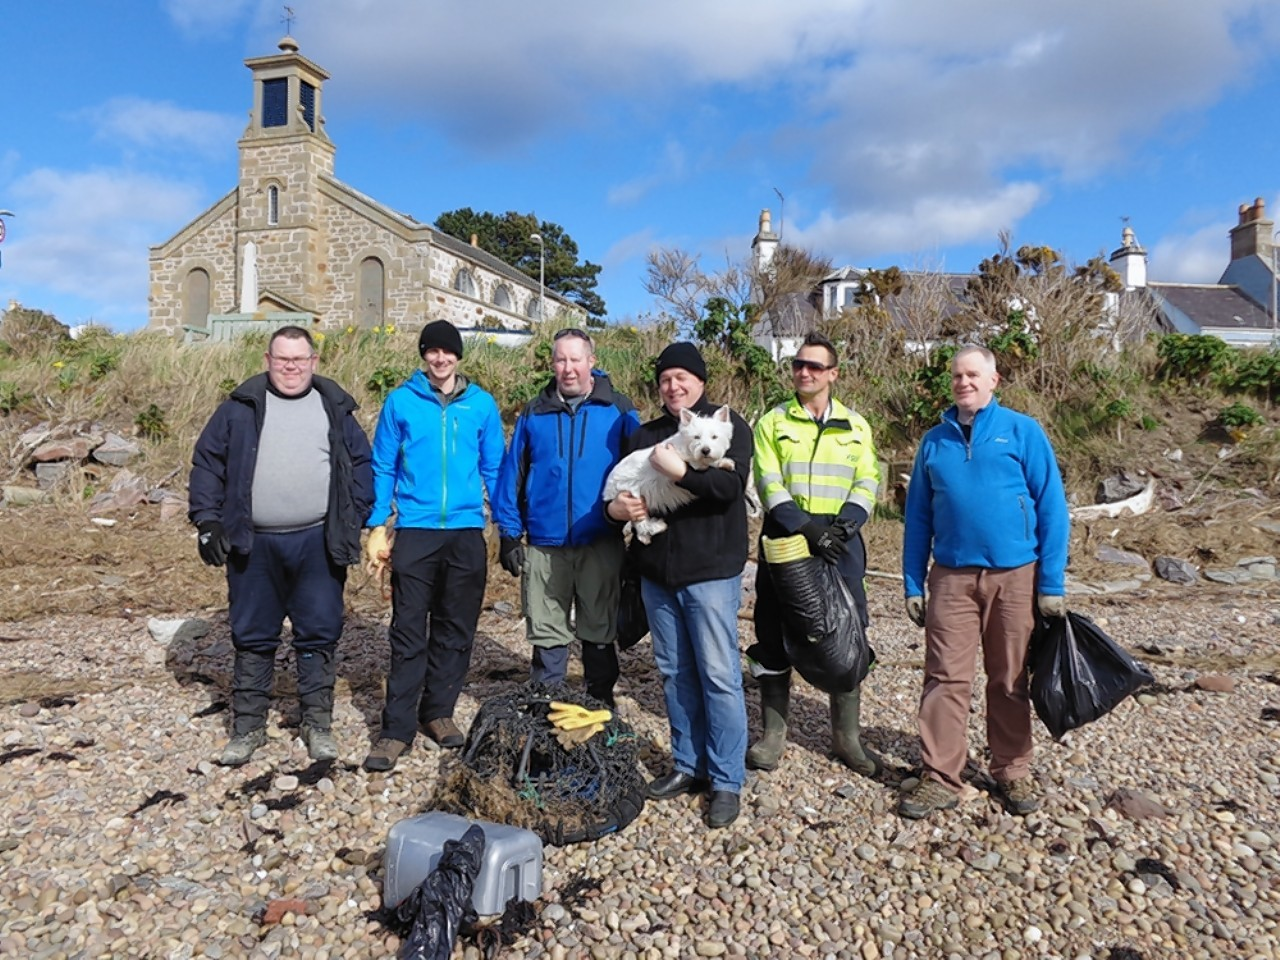 Bonny the dog took part in a UK wide initiative to clear the country's beaches of litter